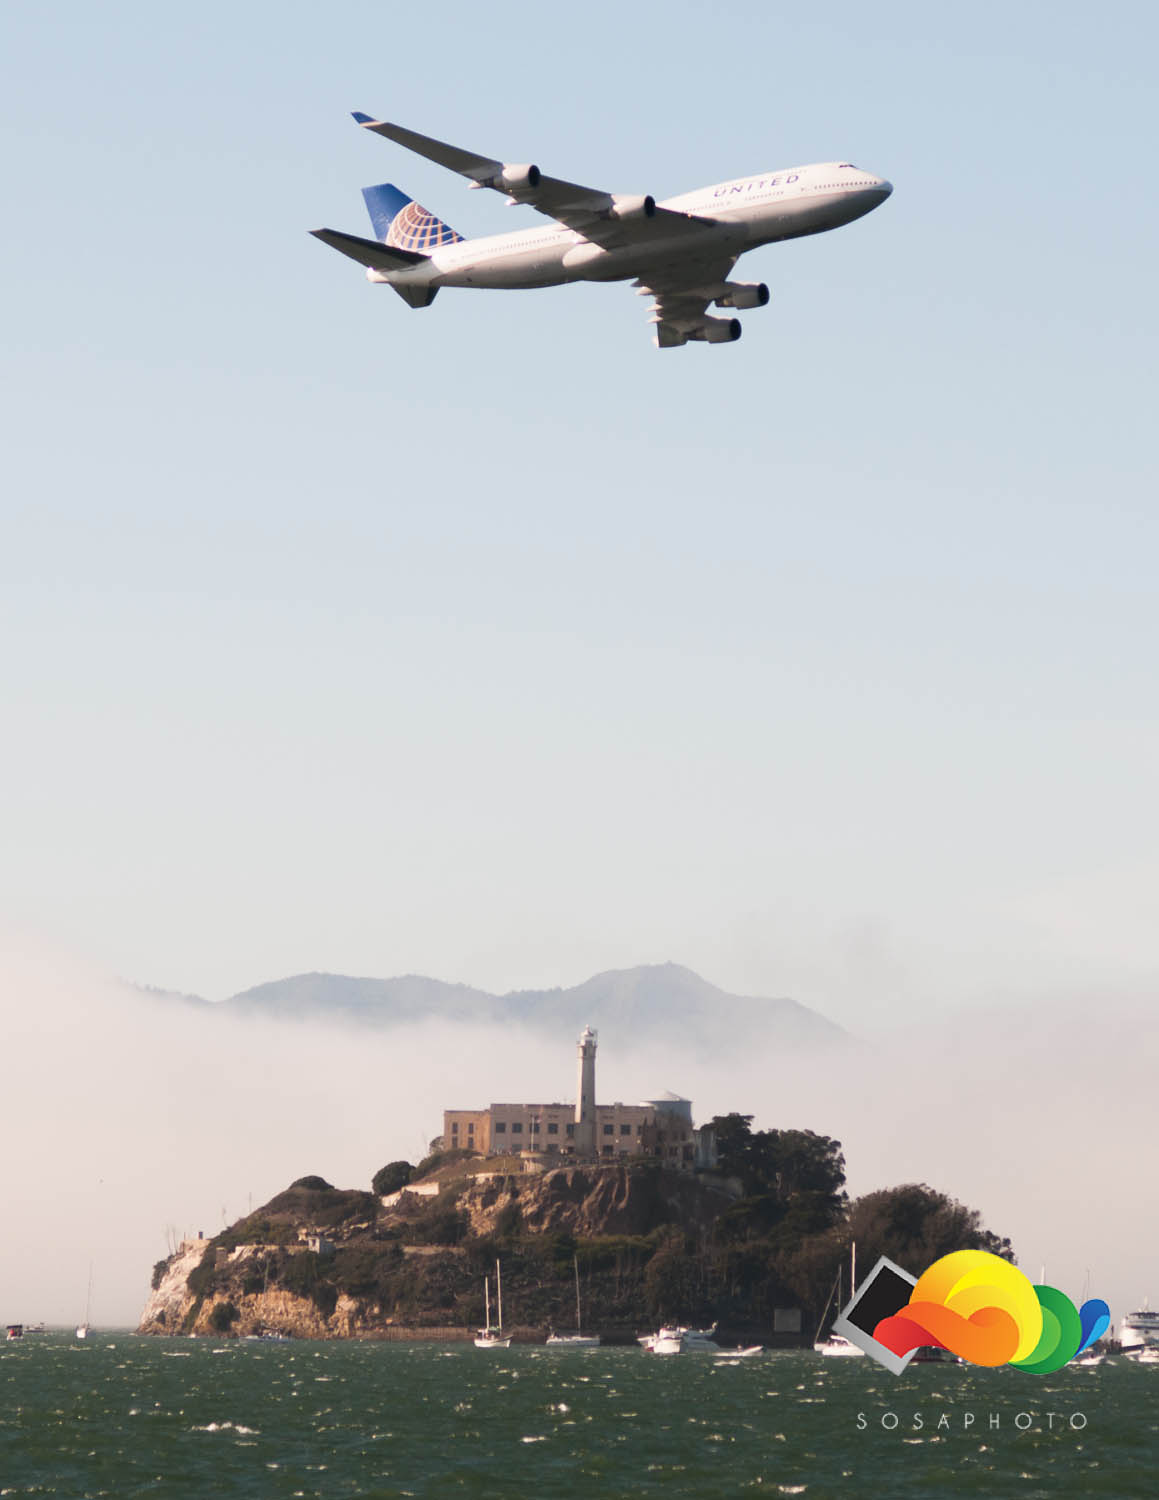 The Finale of Fleet Week, United Airlines Boeing flying over Alcatraz.